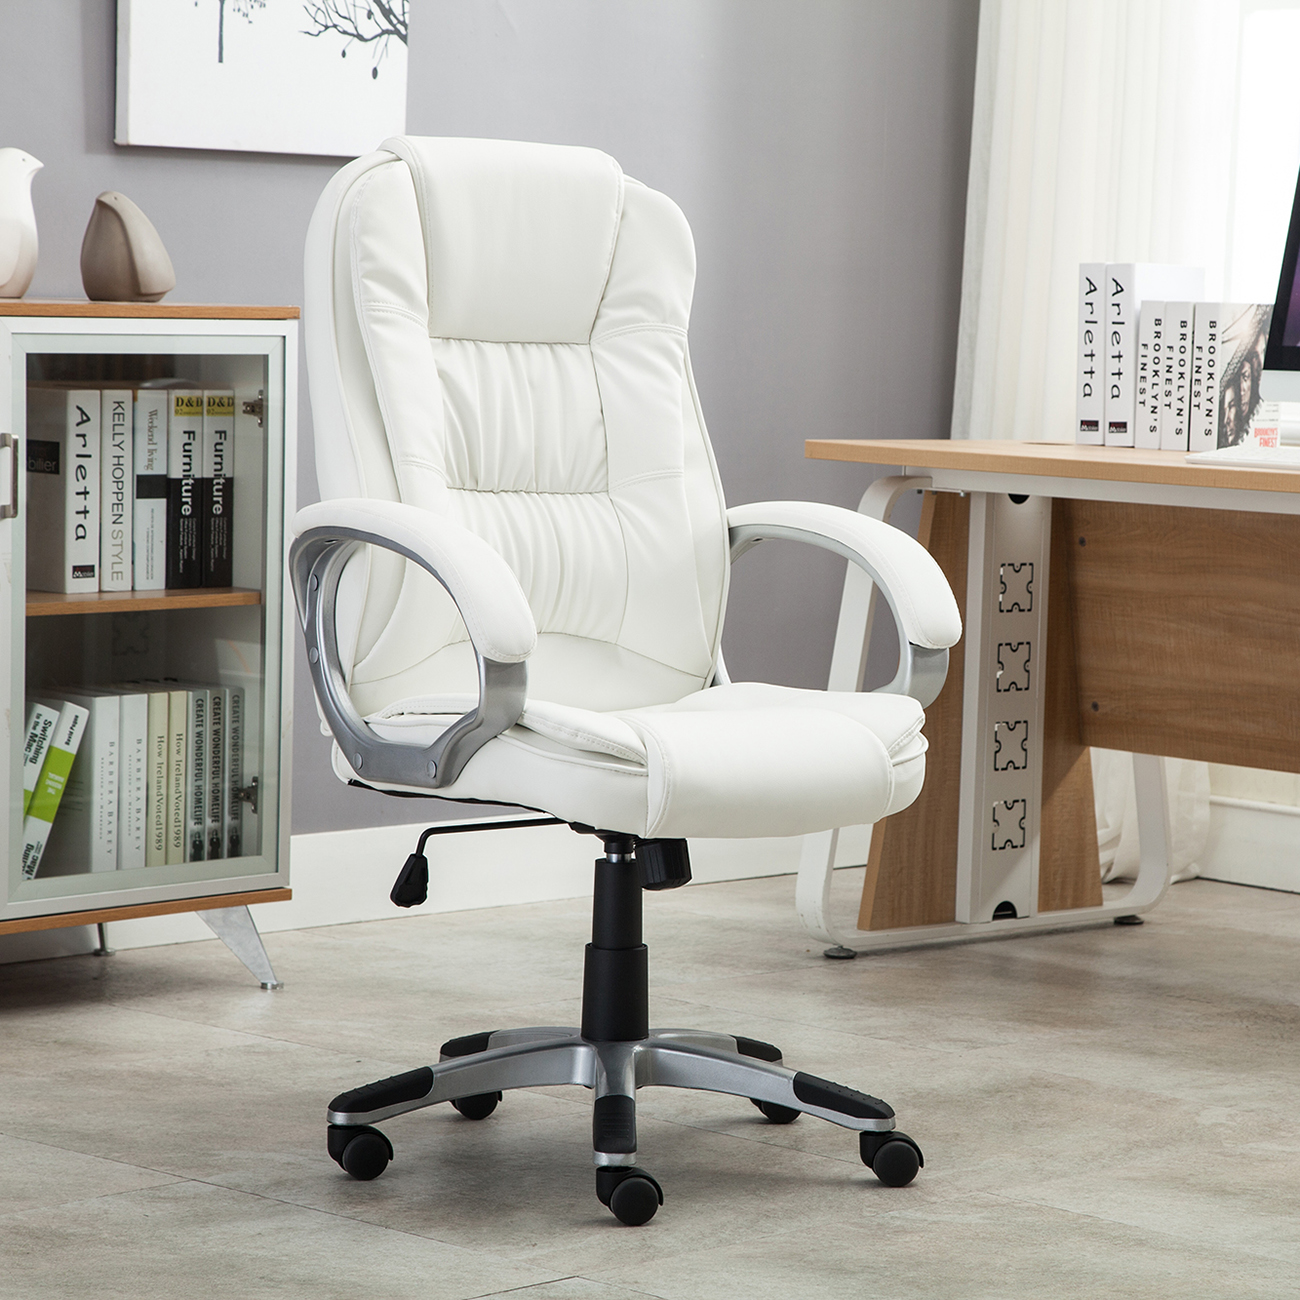 Black Desk Chair Black Brown White Pu Leather Modern Executive Computer